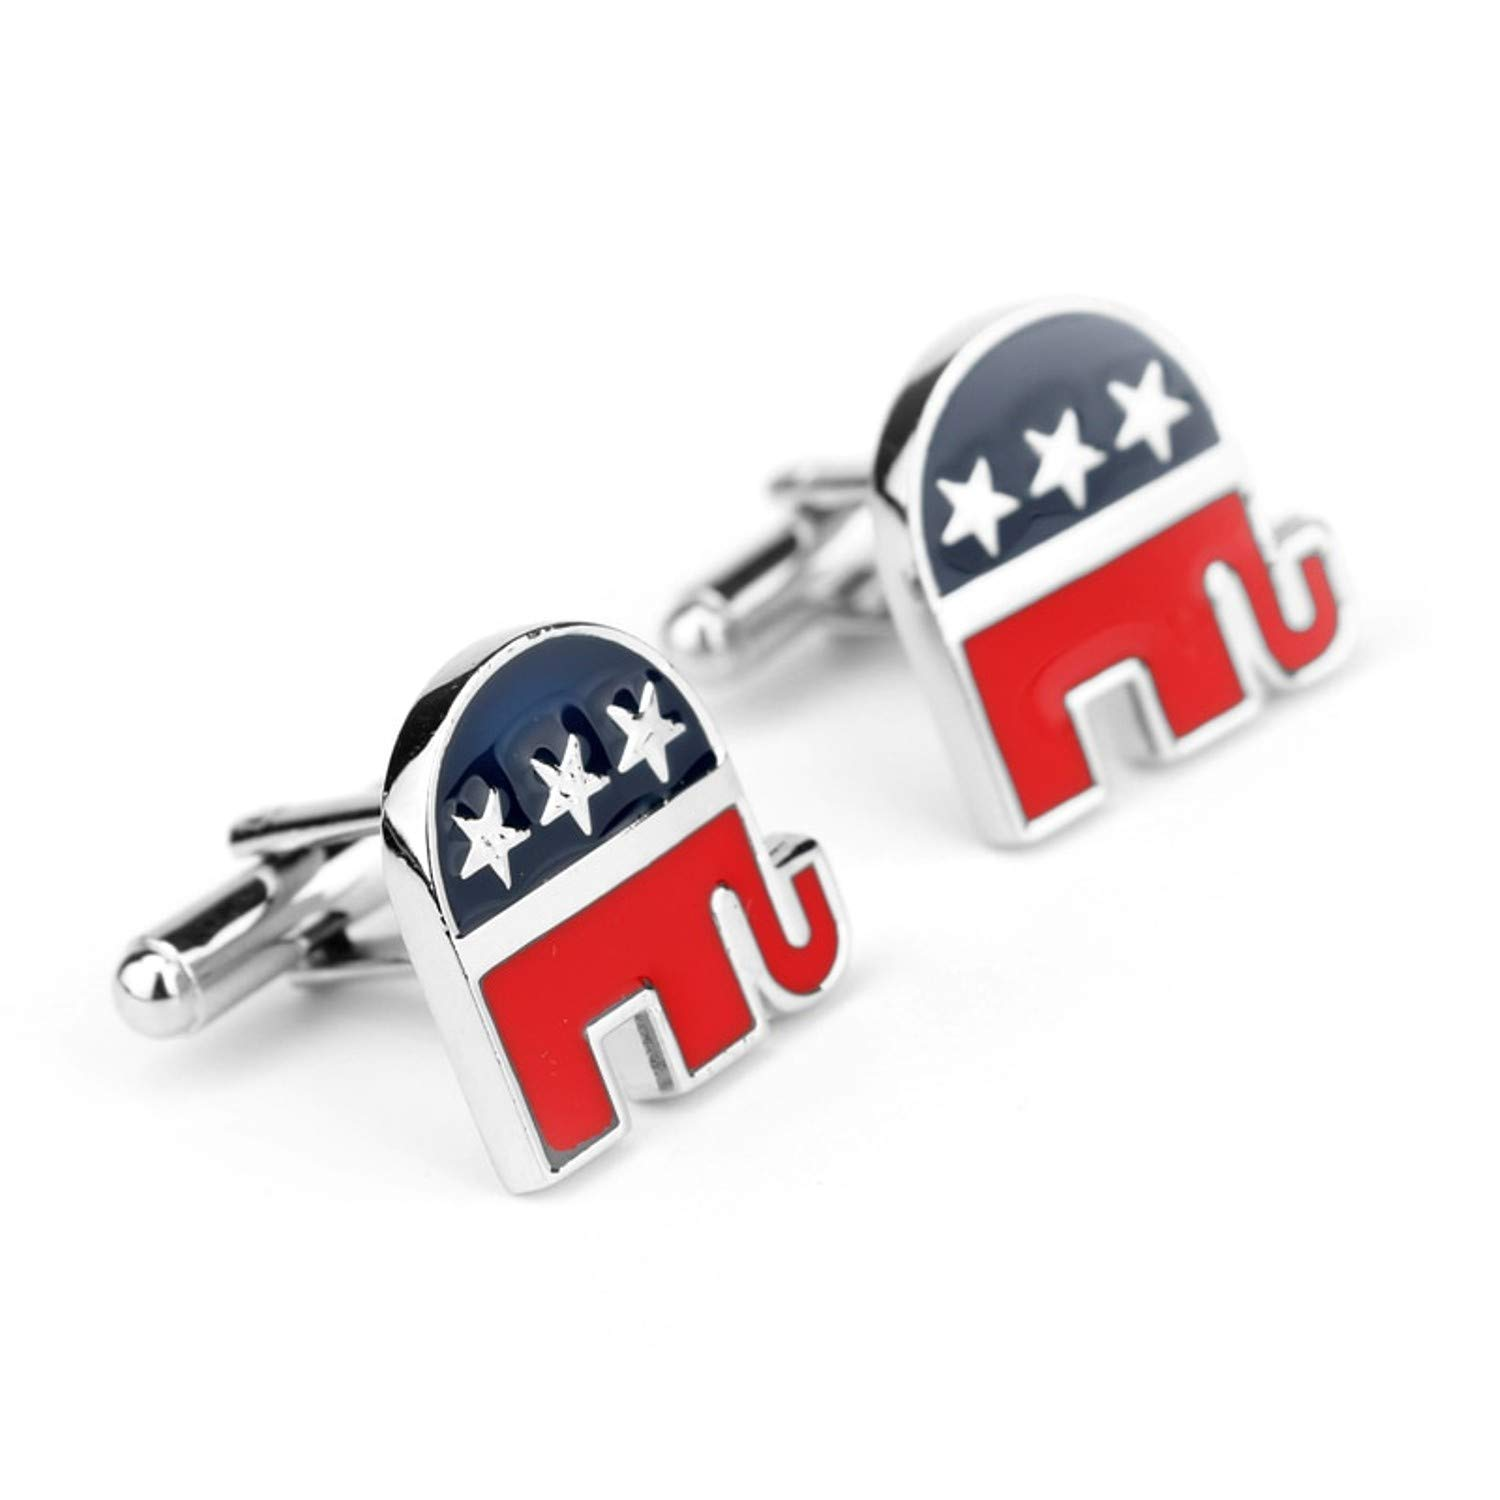 Geek and Glitter Patriotic Cufflink Set - US Republican - America United States Government Gift for Suits (Republican Elephant)